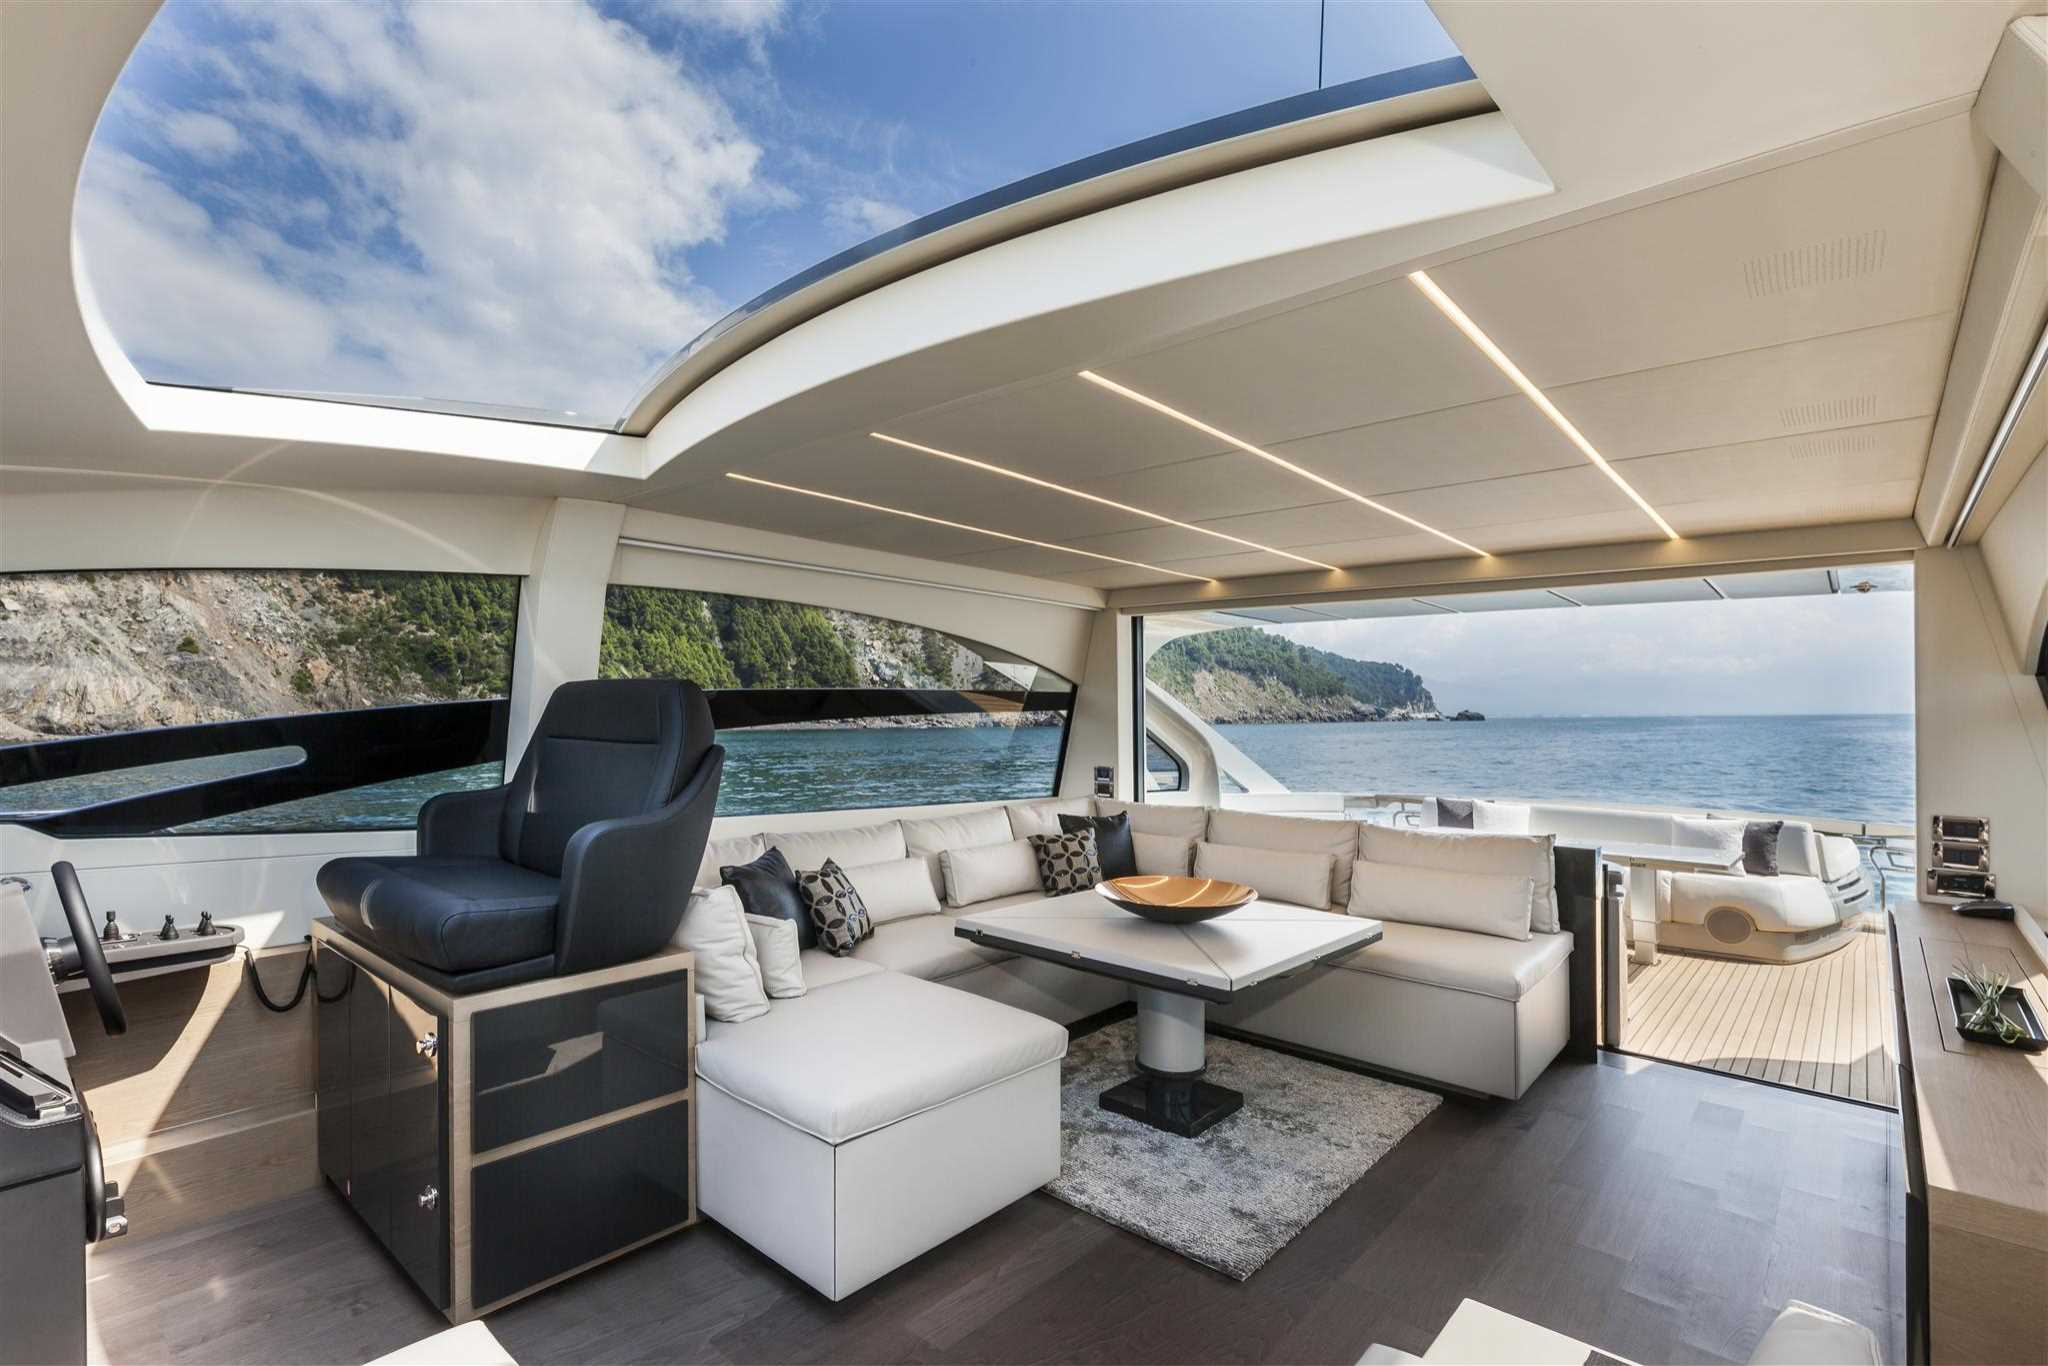 2018 Ferretti Group Pershing 70 Luxury Yacht Interior Salon